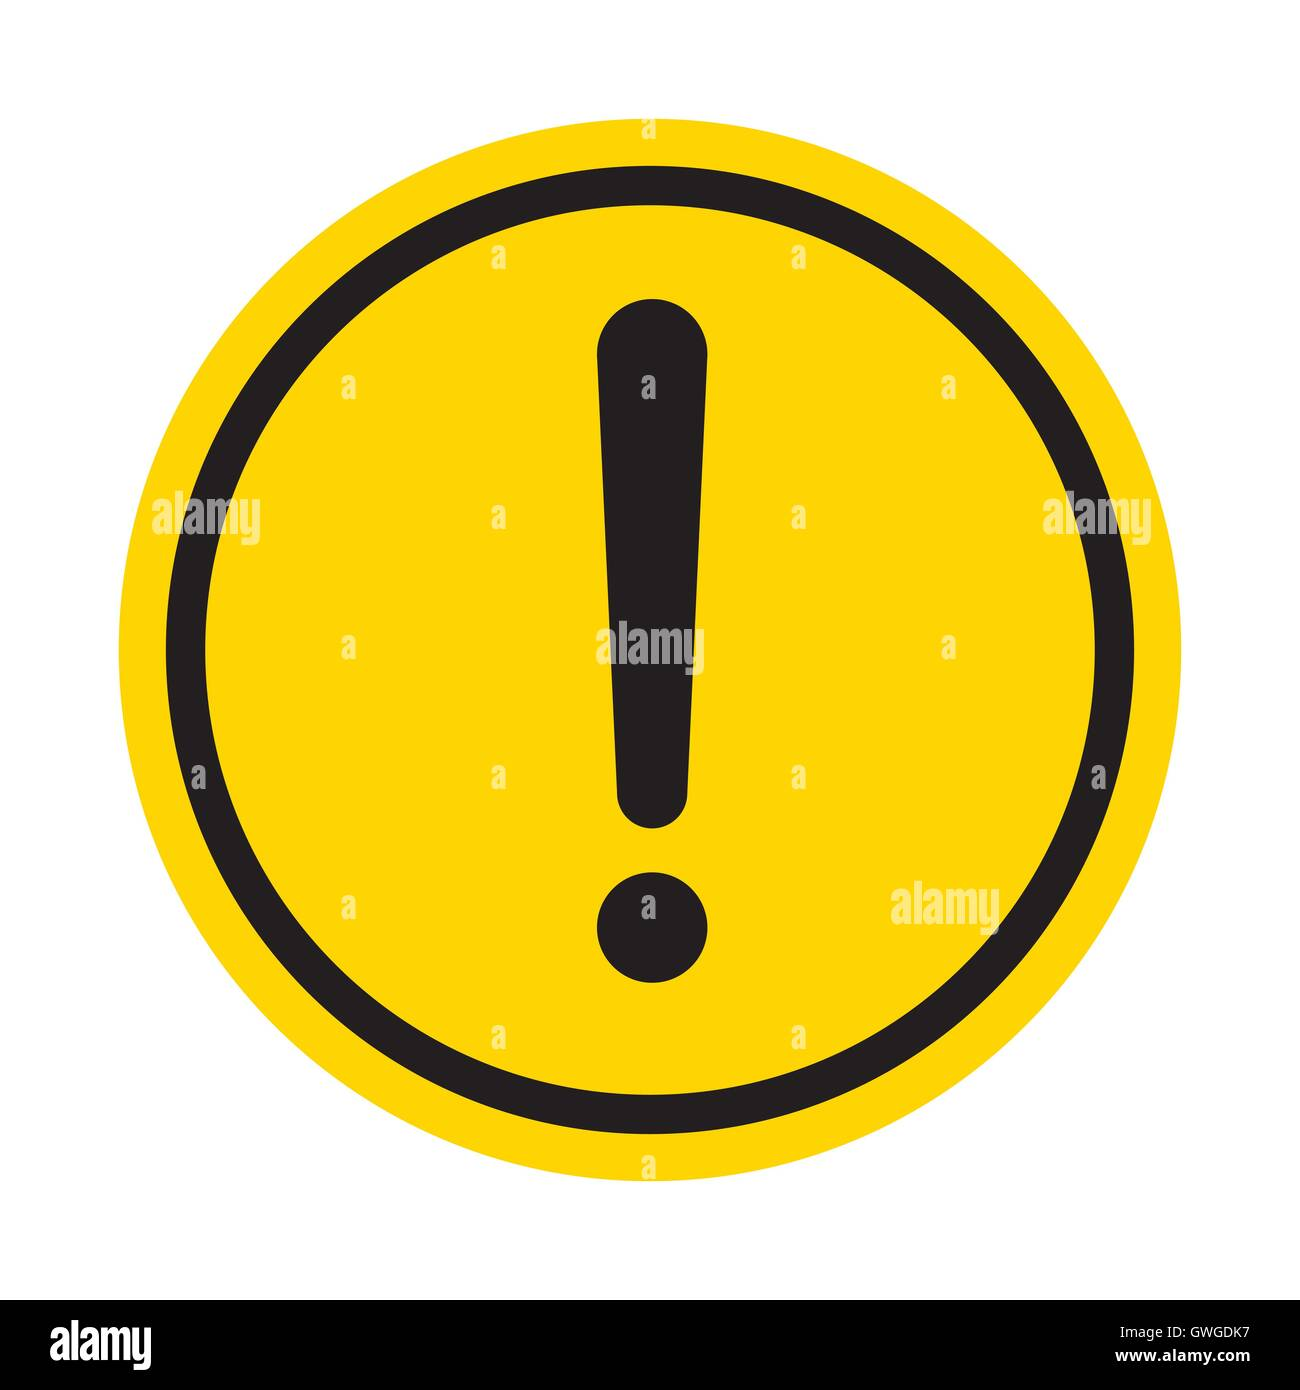 Icons Trading Error Log: Warning, Sign, Exclamation, Pressure, Mark, Yellow, Icon